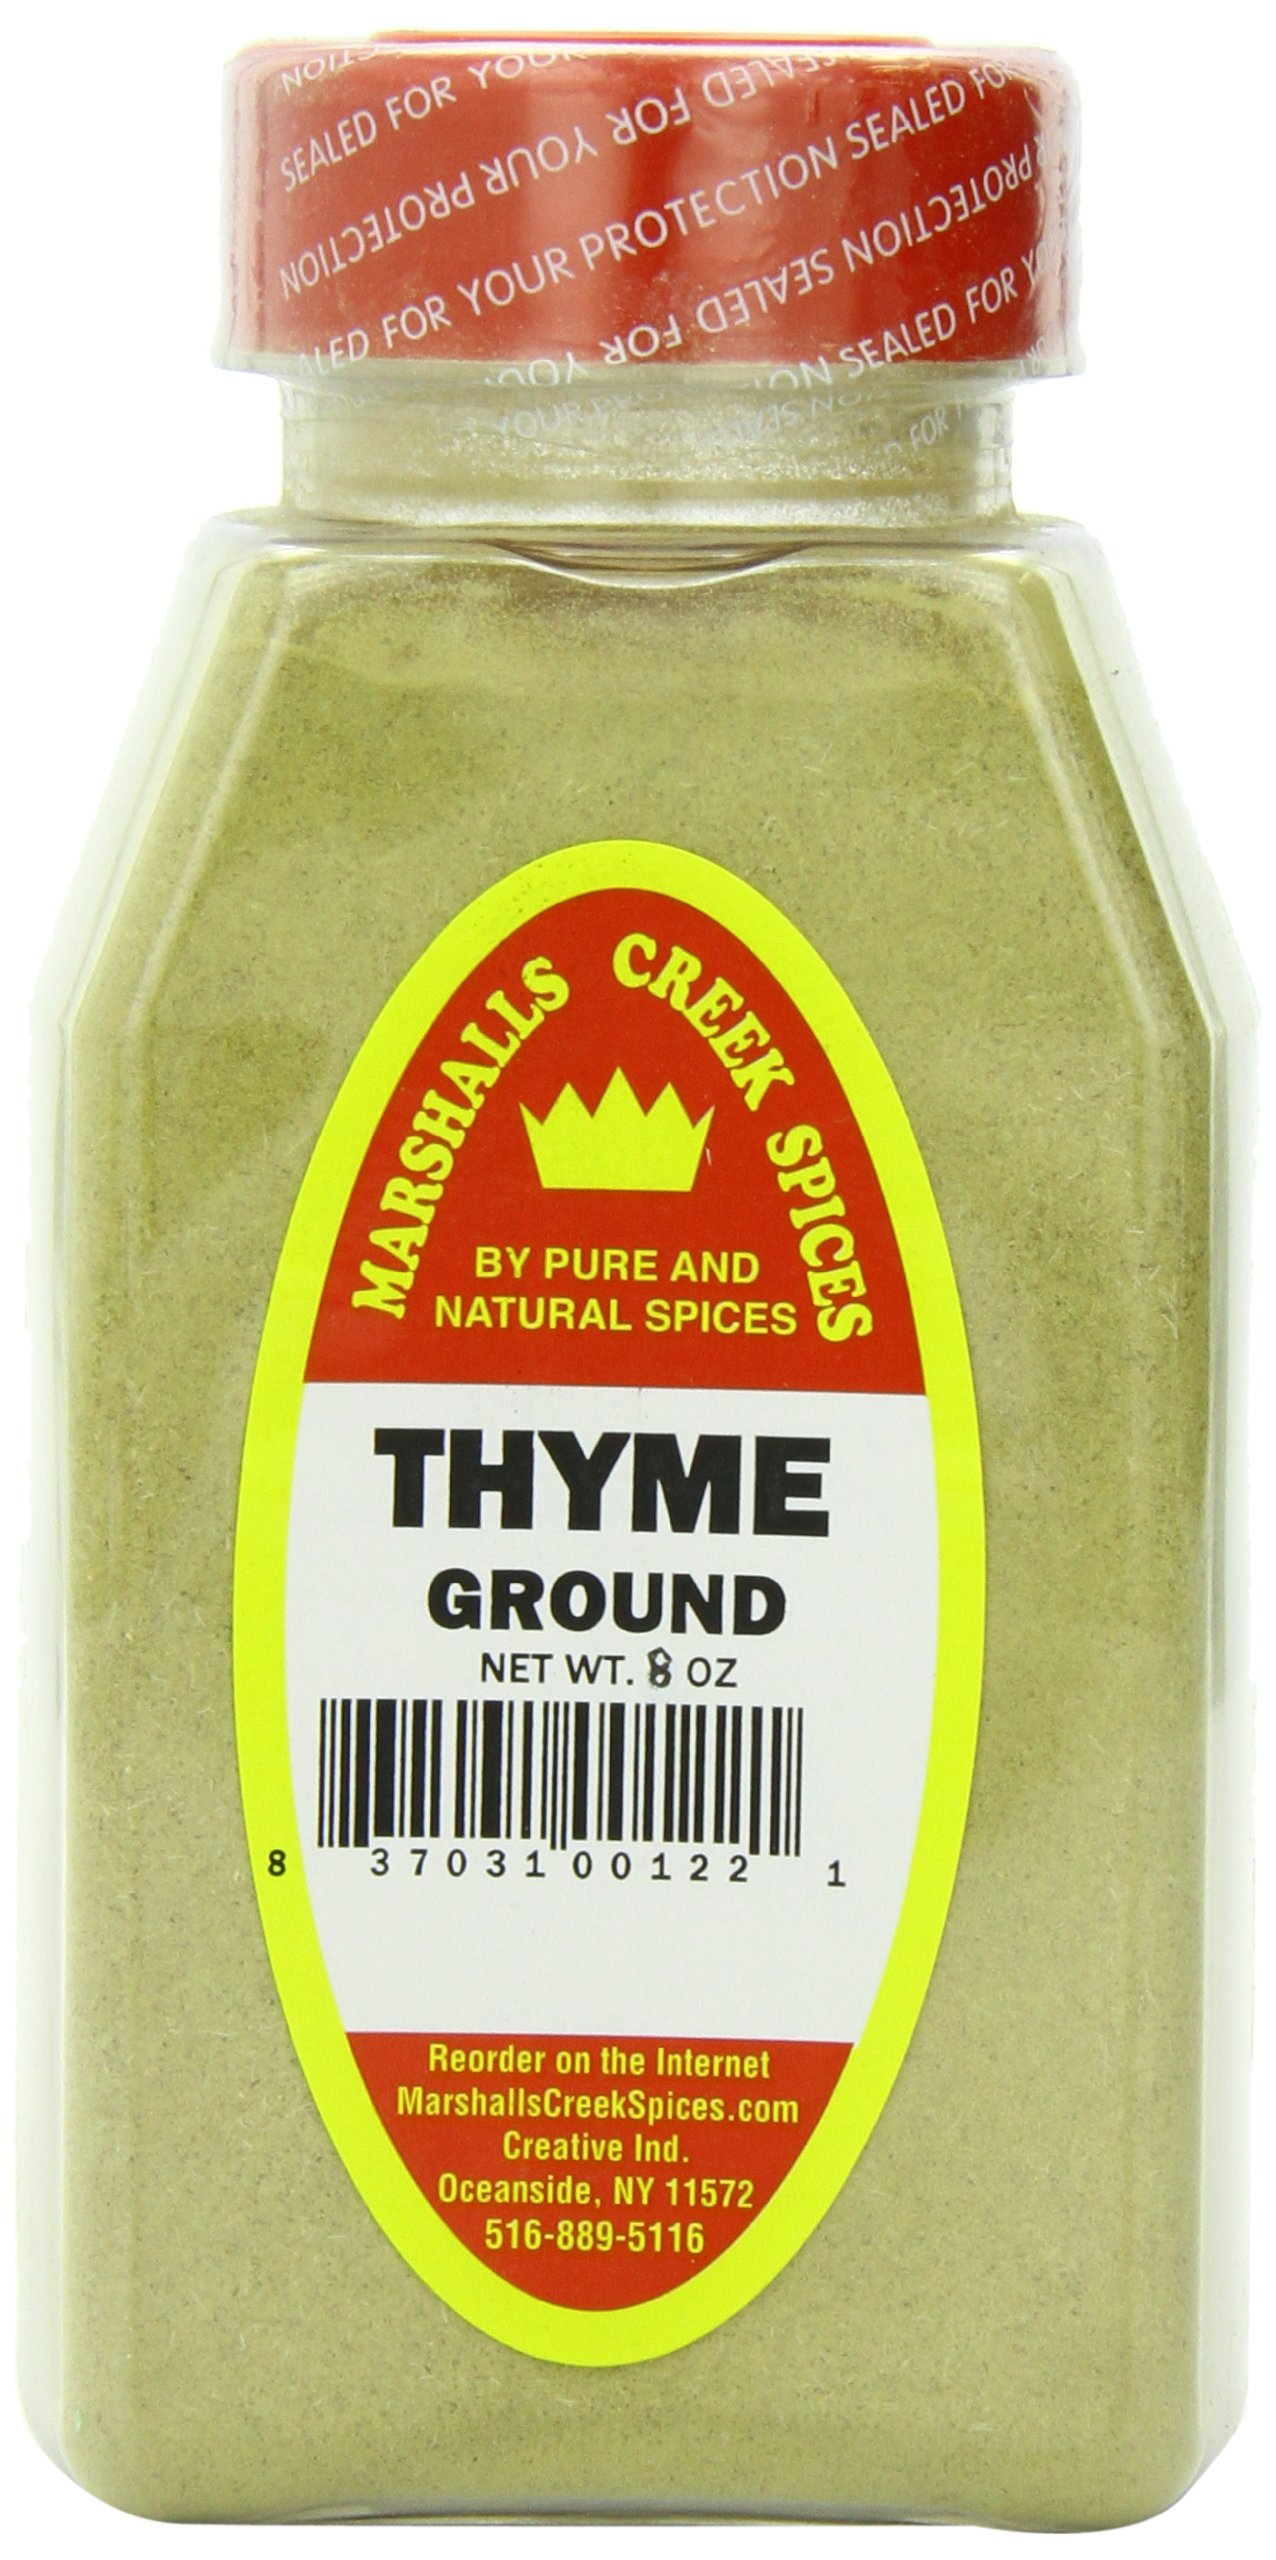 Marshalls Creek Spices Thyme Ground Seasoning, 8 Ounce